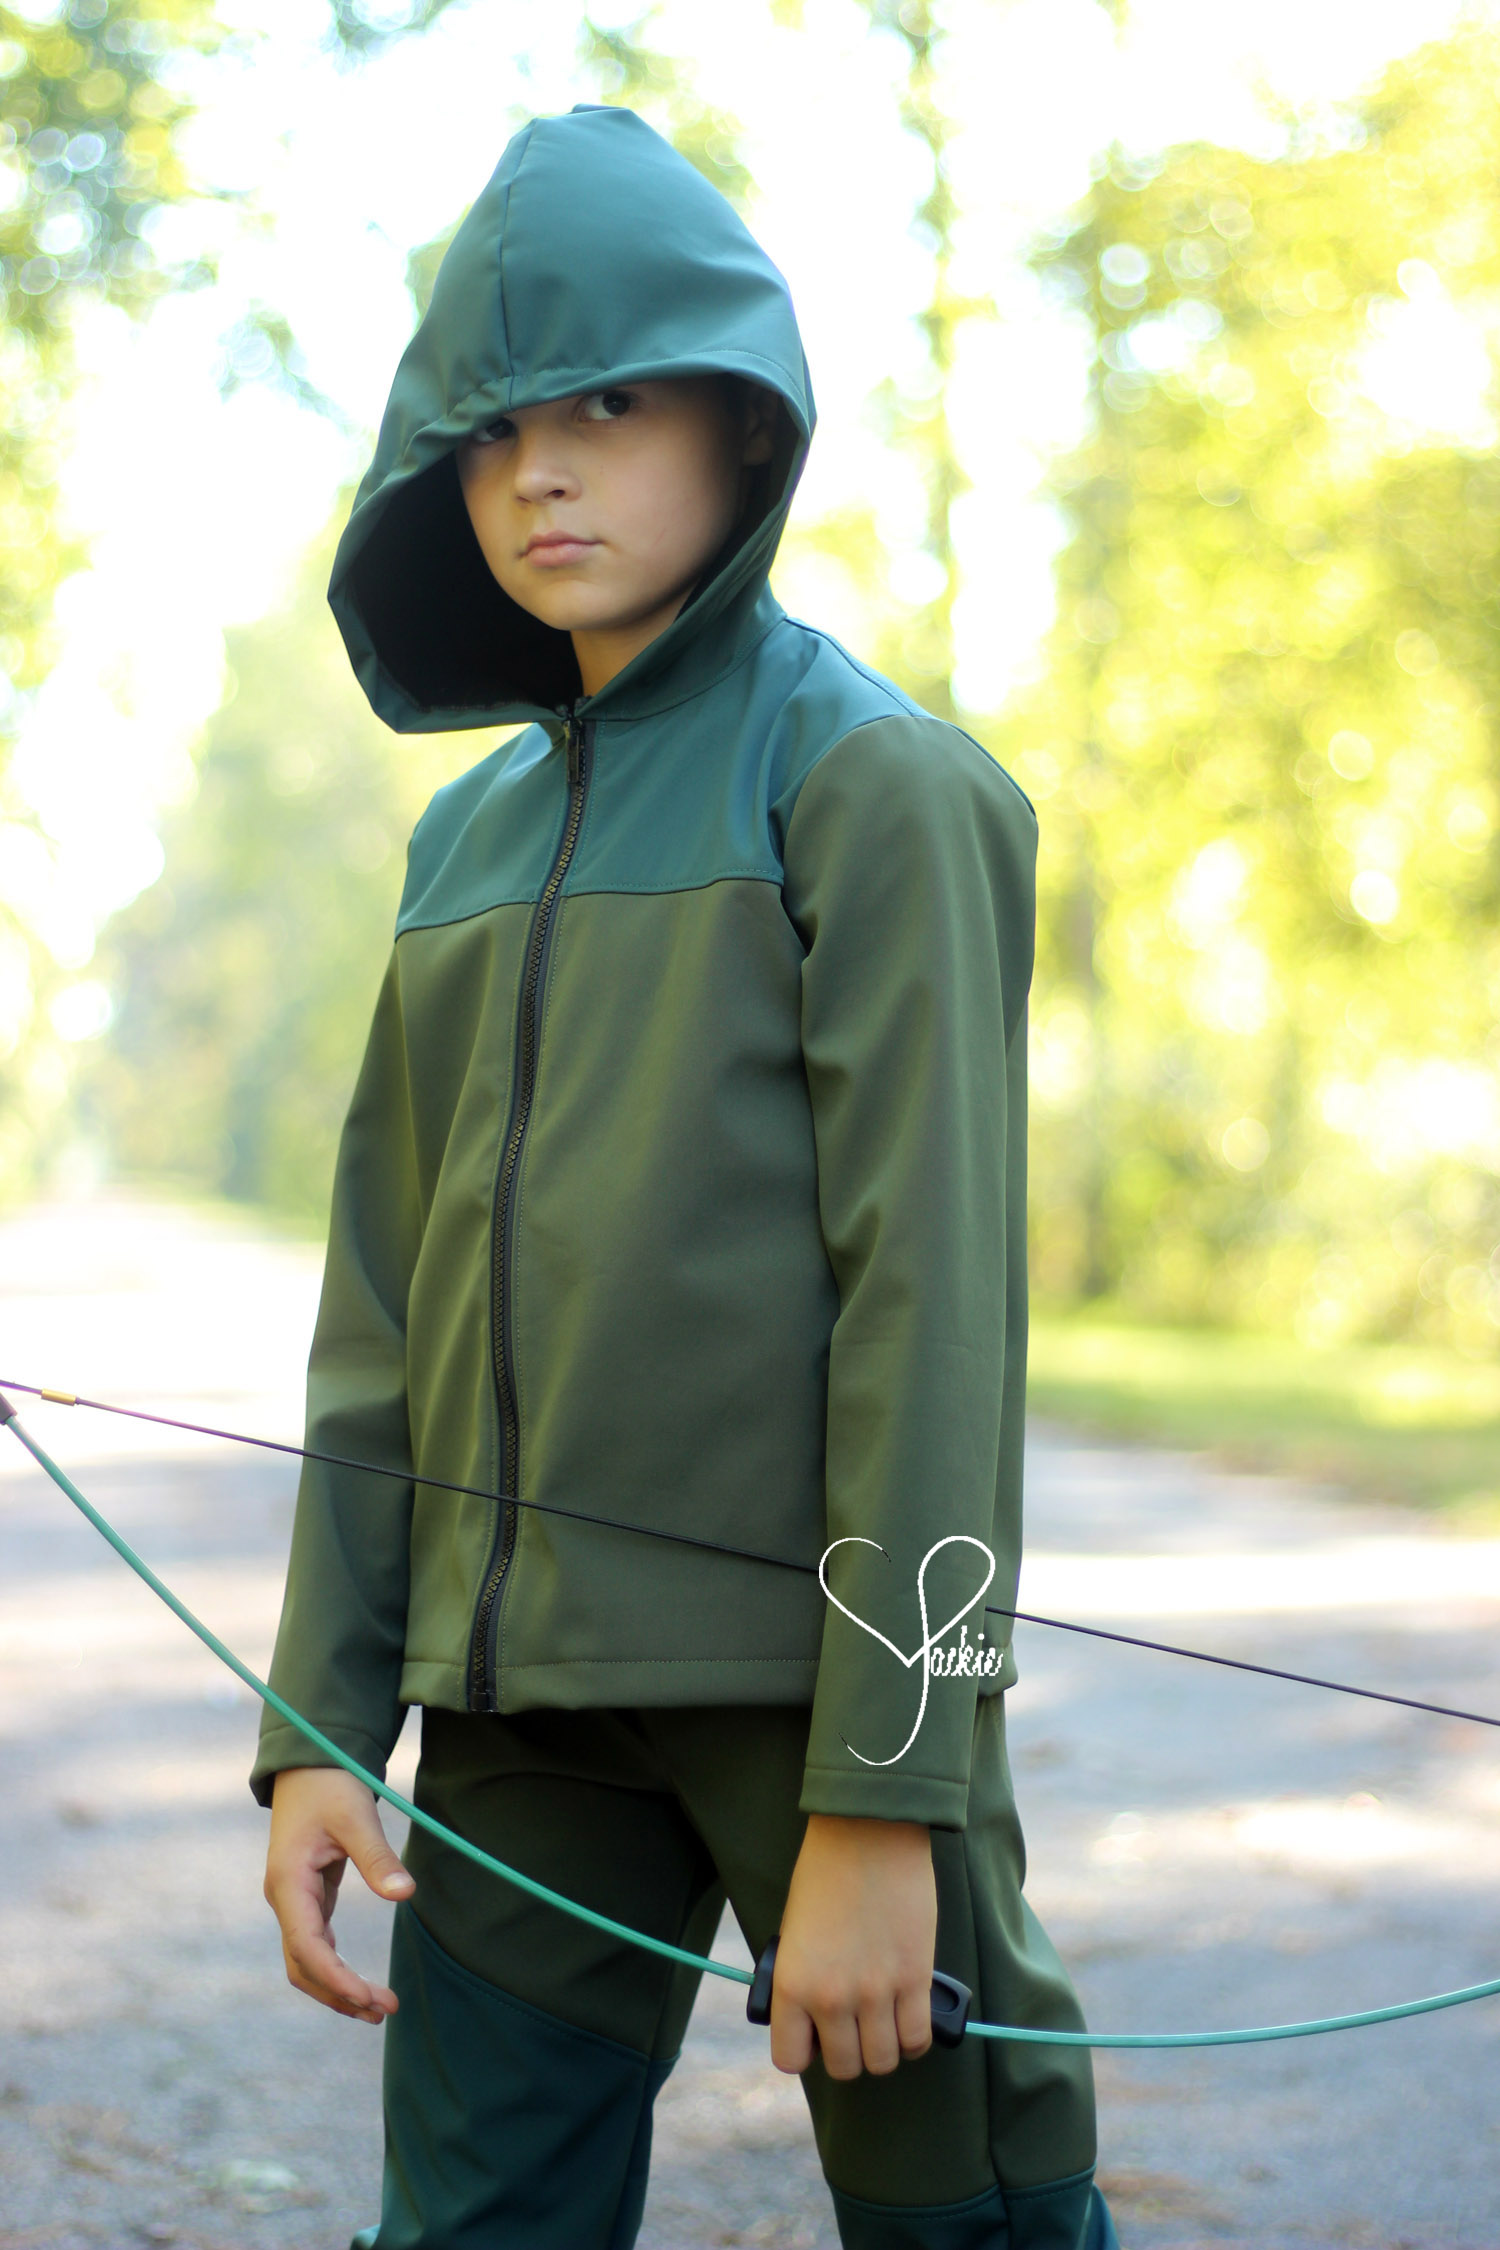 JB_Green Arrow_9317_.jpg